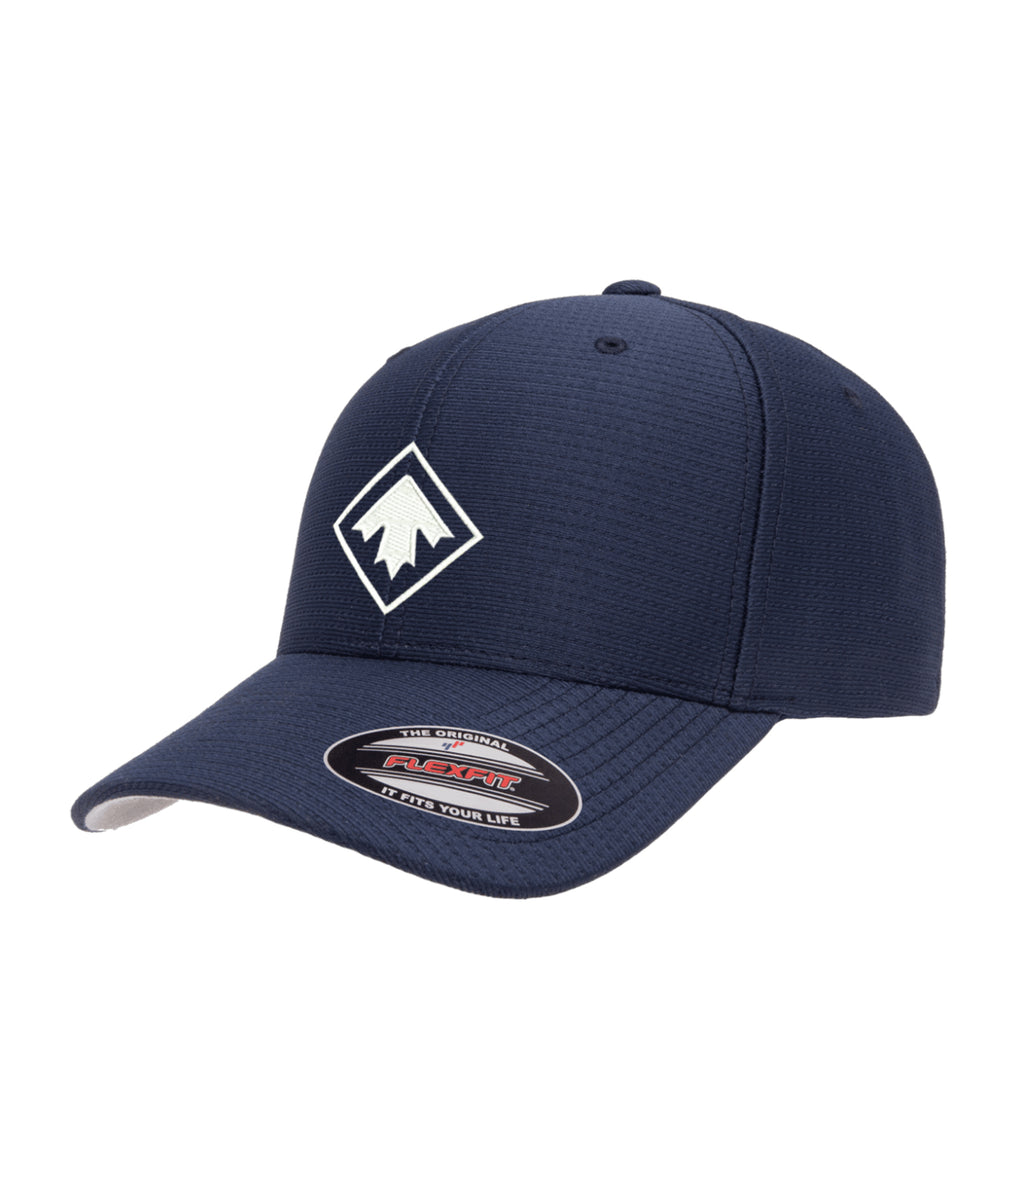 PERFORMANCE BALL CAP